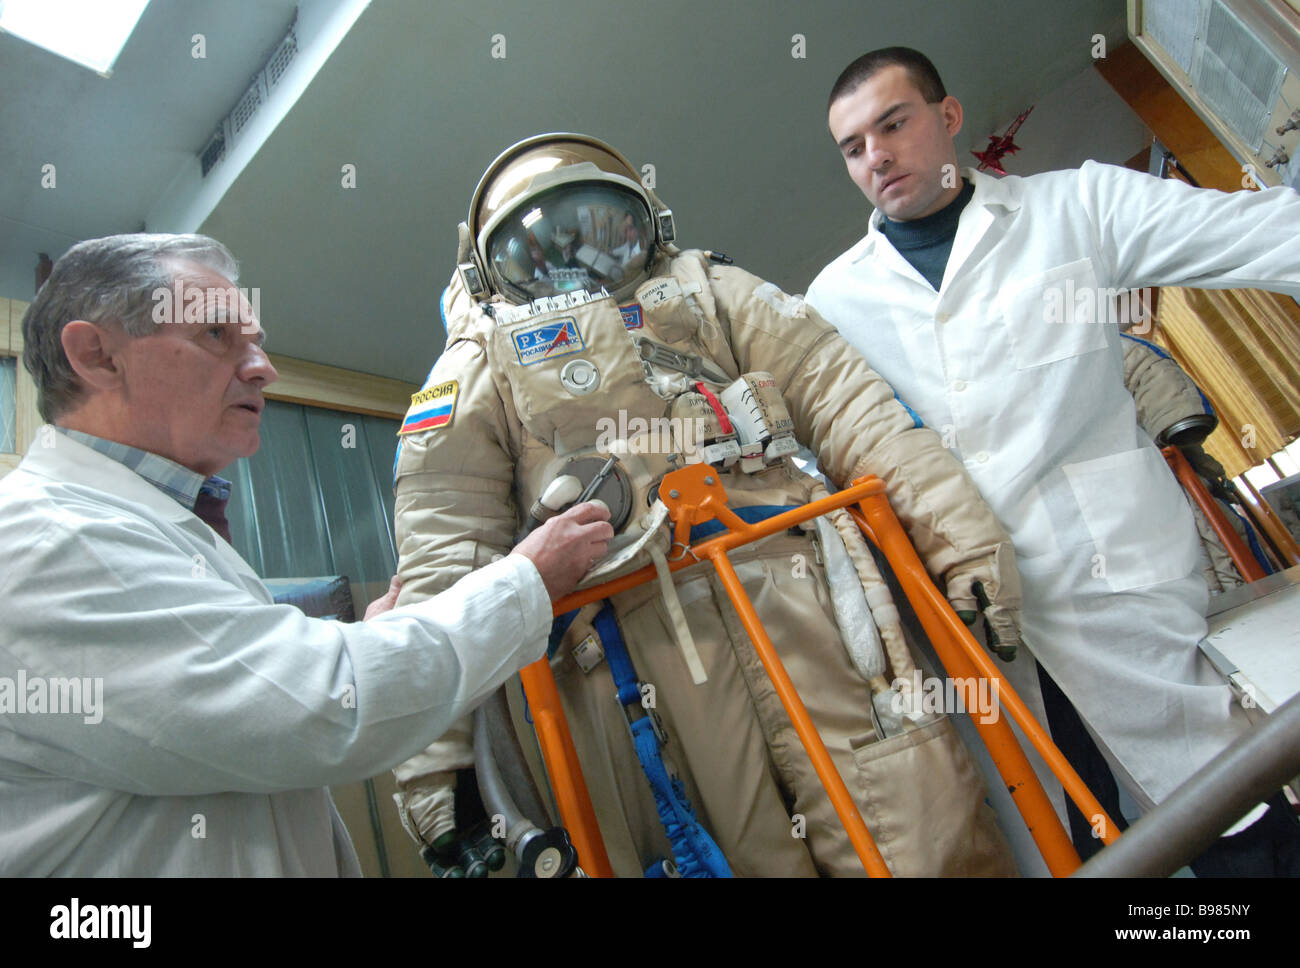 The Orlan MK is a leading edge spacesuit to be used since 2008 Designed by the Zvezda life support system manufacturers - Stock Image